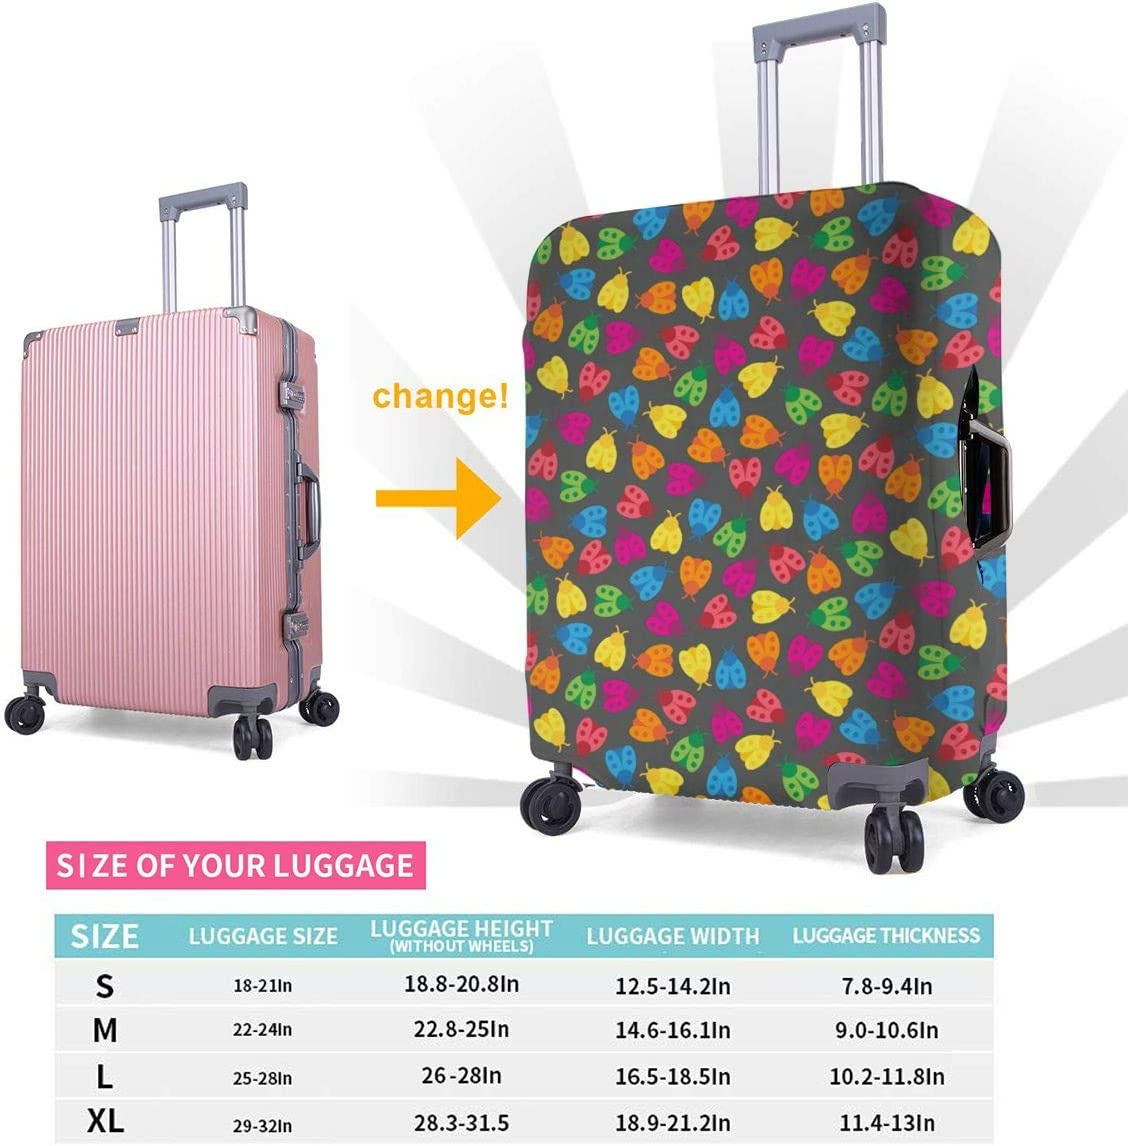 Travel Luggage Cover Spandex Suitcase Protective Cover Washable Baggage Carry on Protector Size XL L M S Rainbow Ladybugs XL